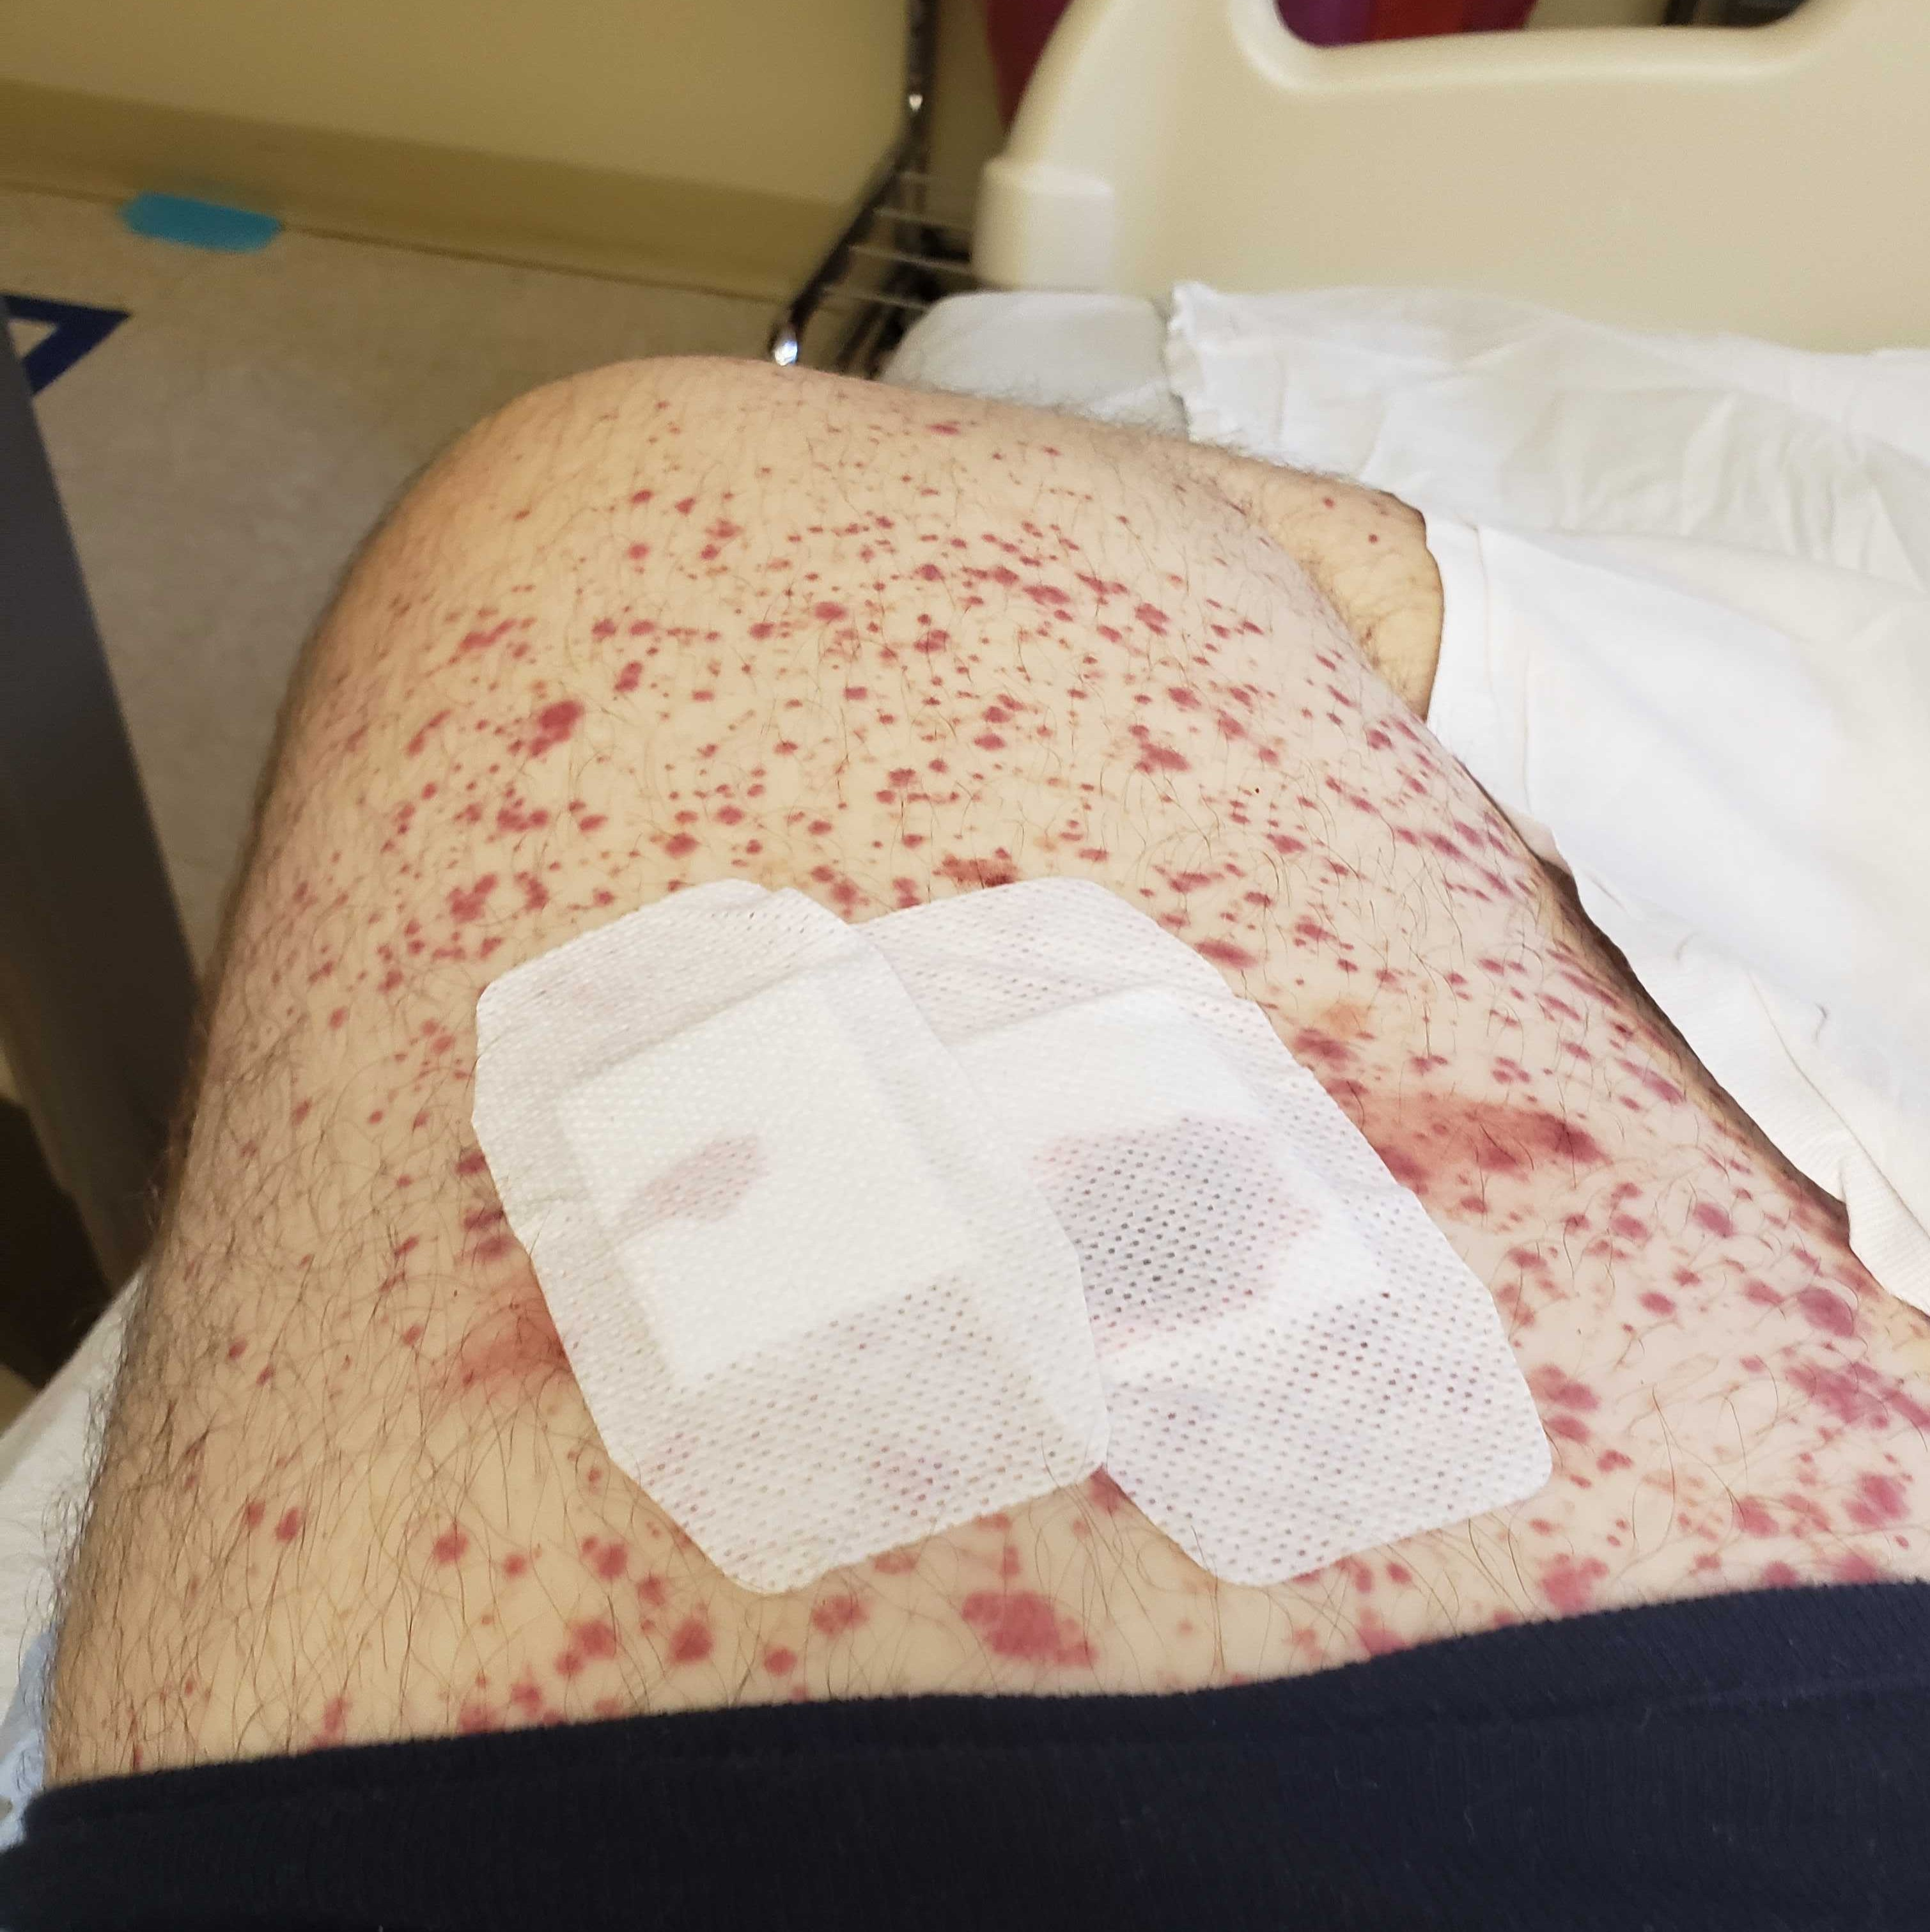 My thigh post-biopsy